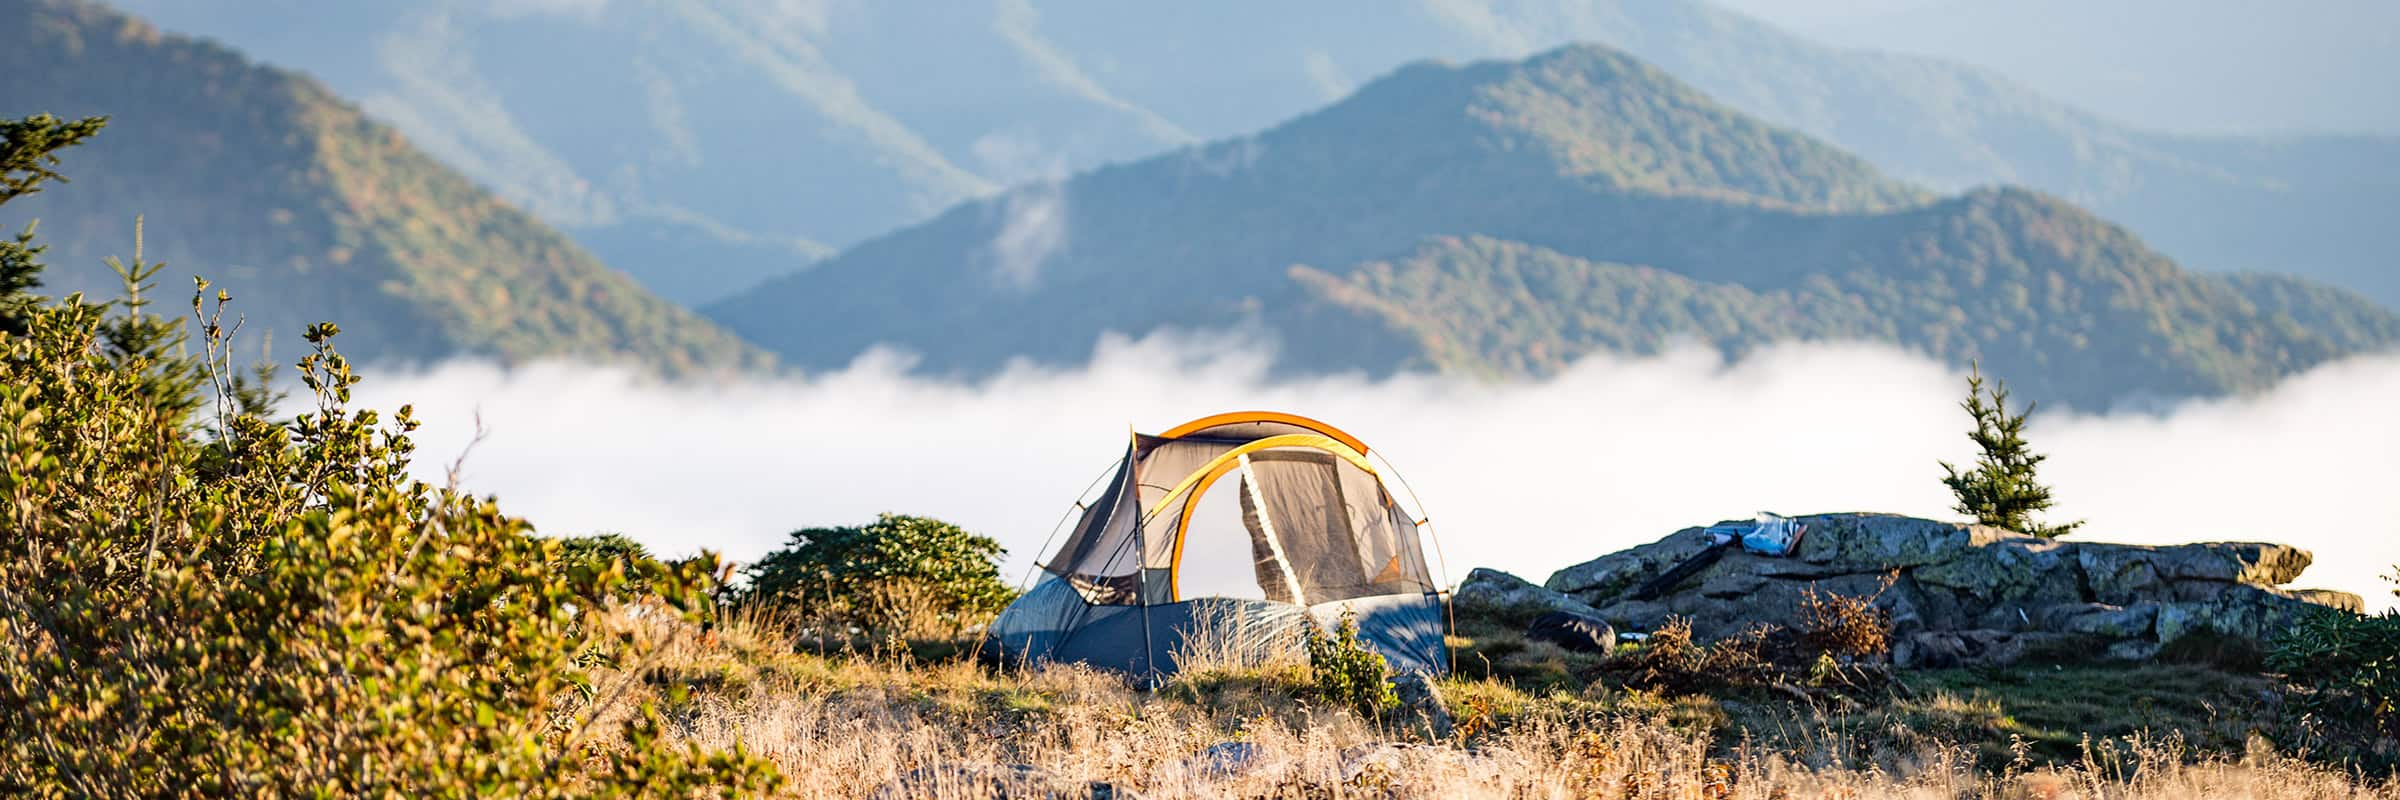 A step-by-step guide to responsible camping